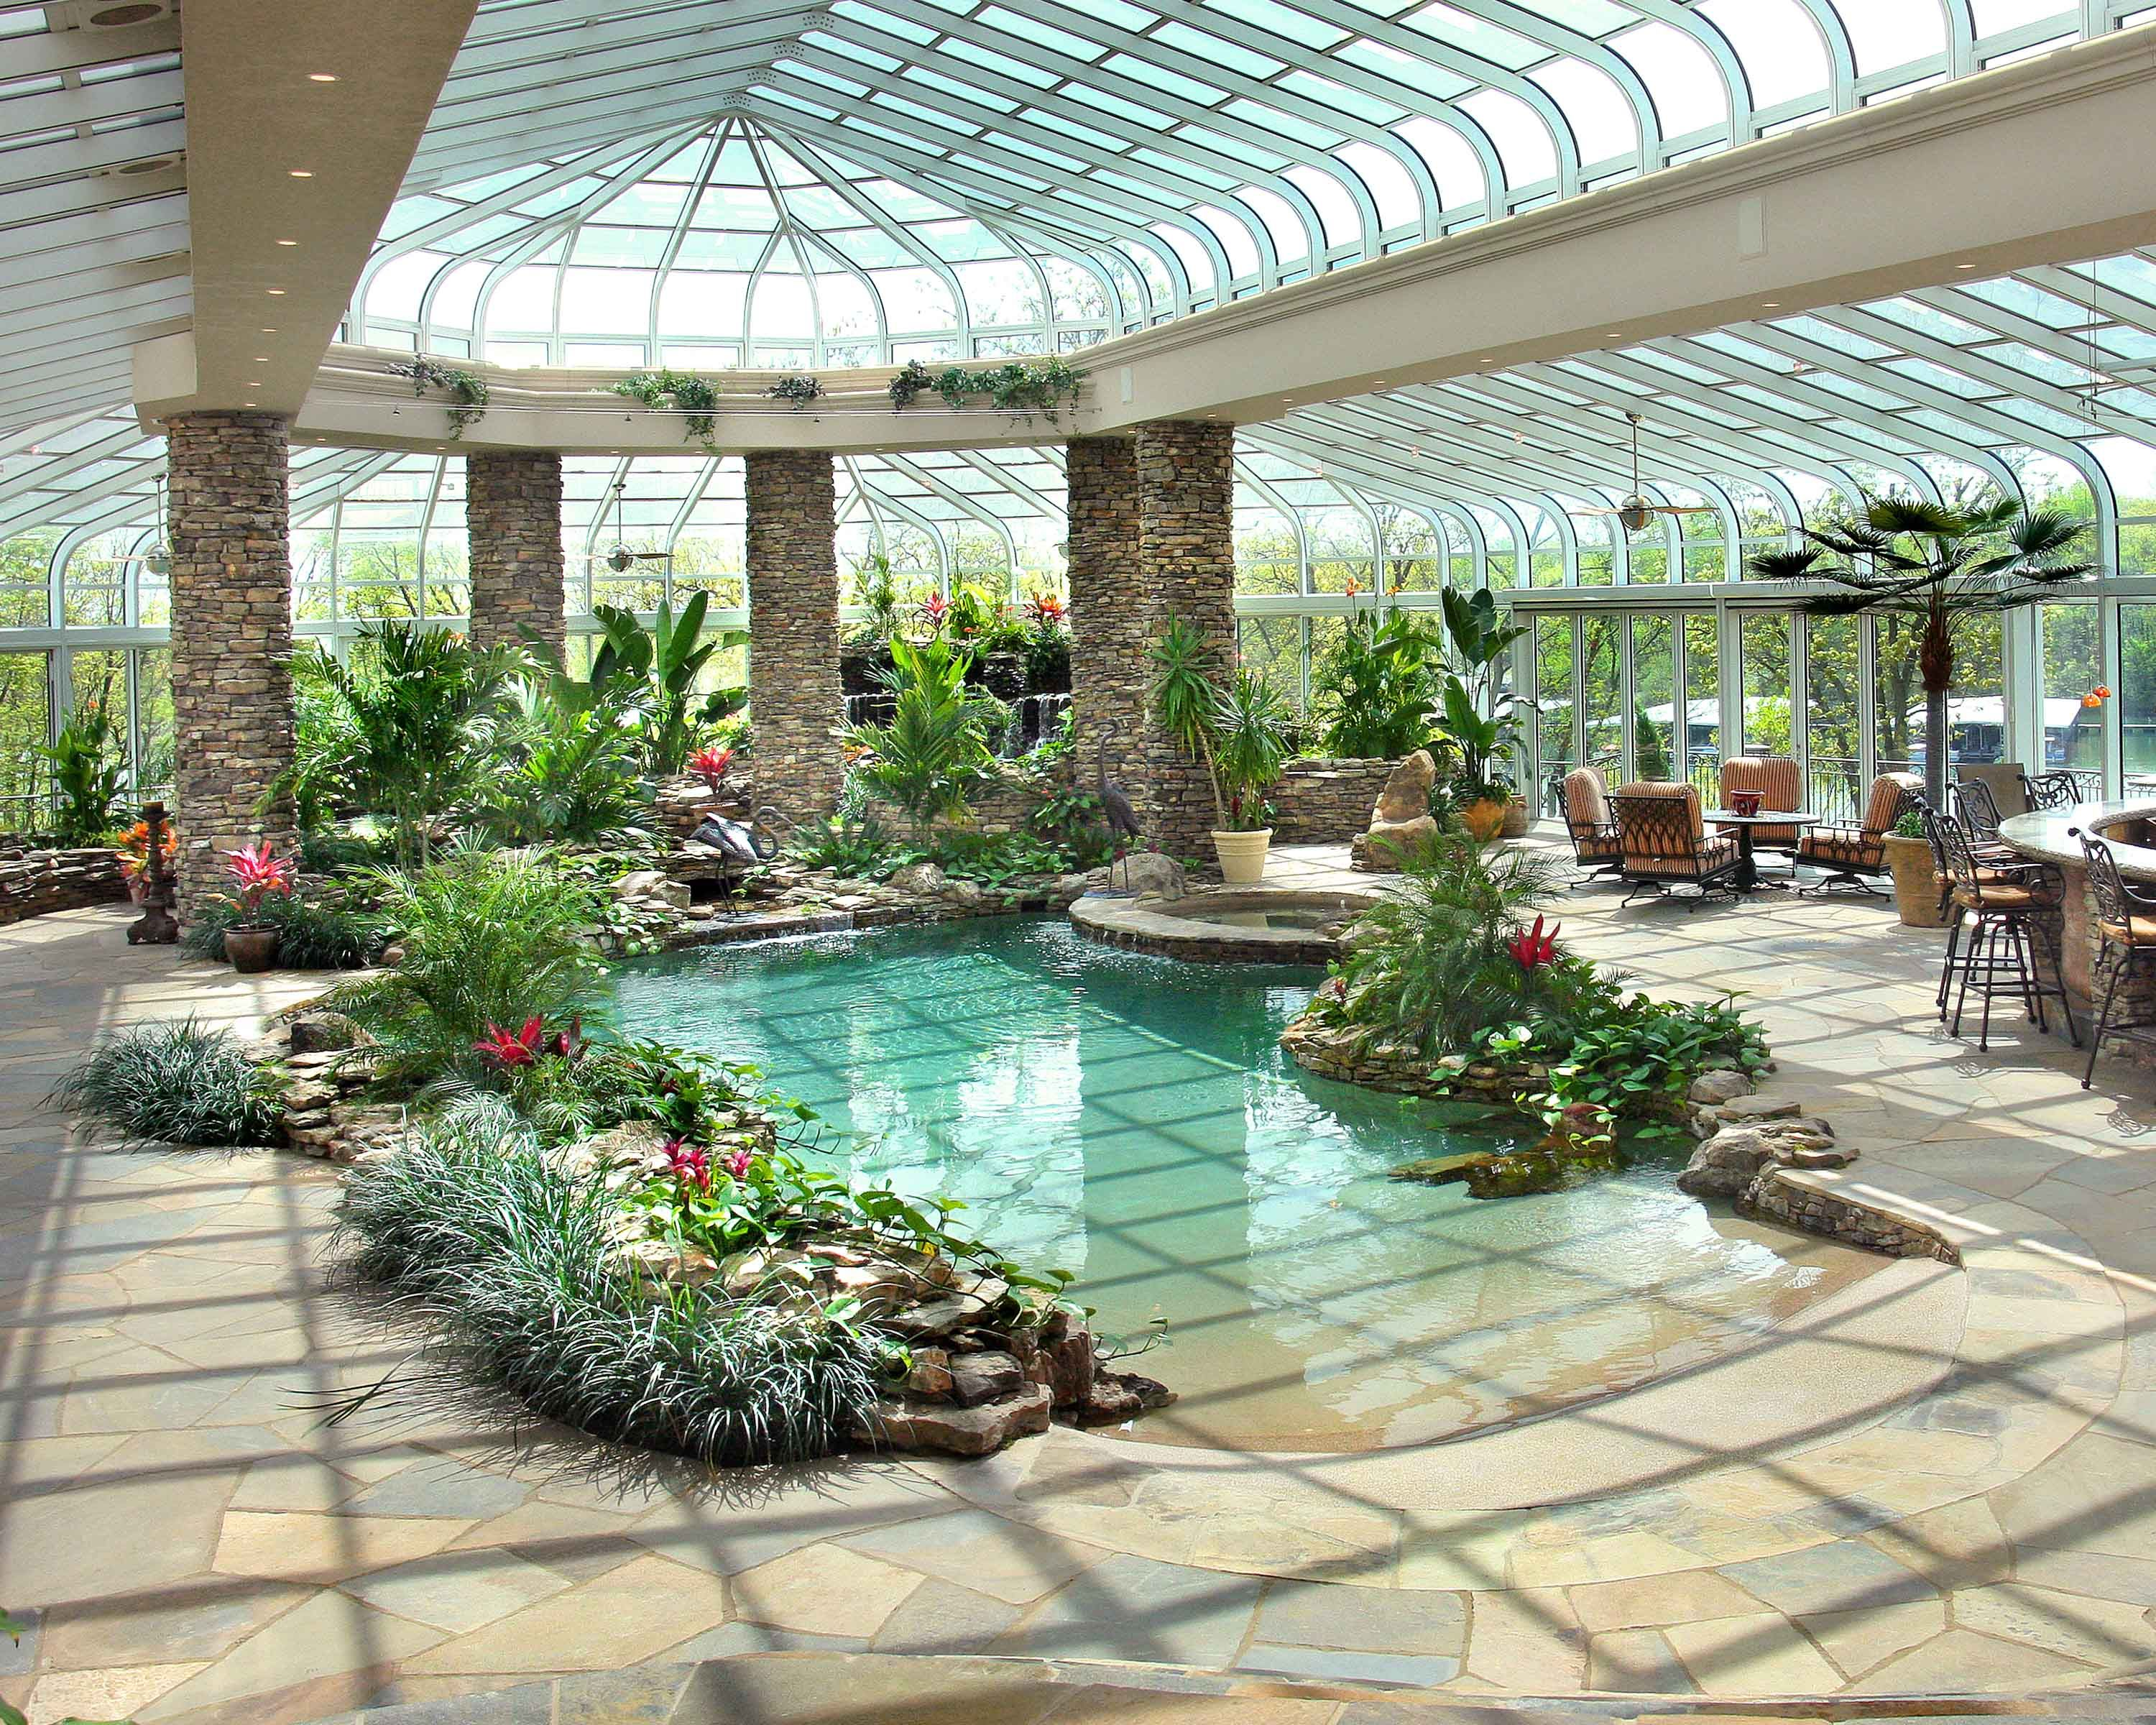 magnificent doesn 39 t even describe this grand oasis pool enclosure it is complete with two ponds. Black Bedroom Furniture Sets. Home Design Ideas